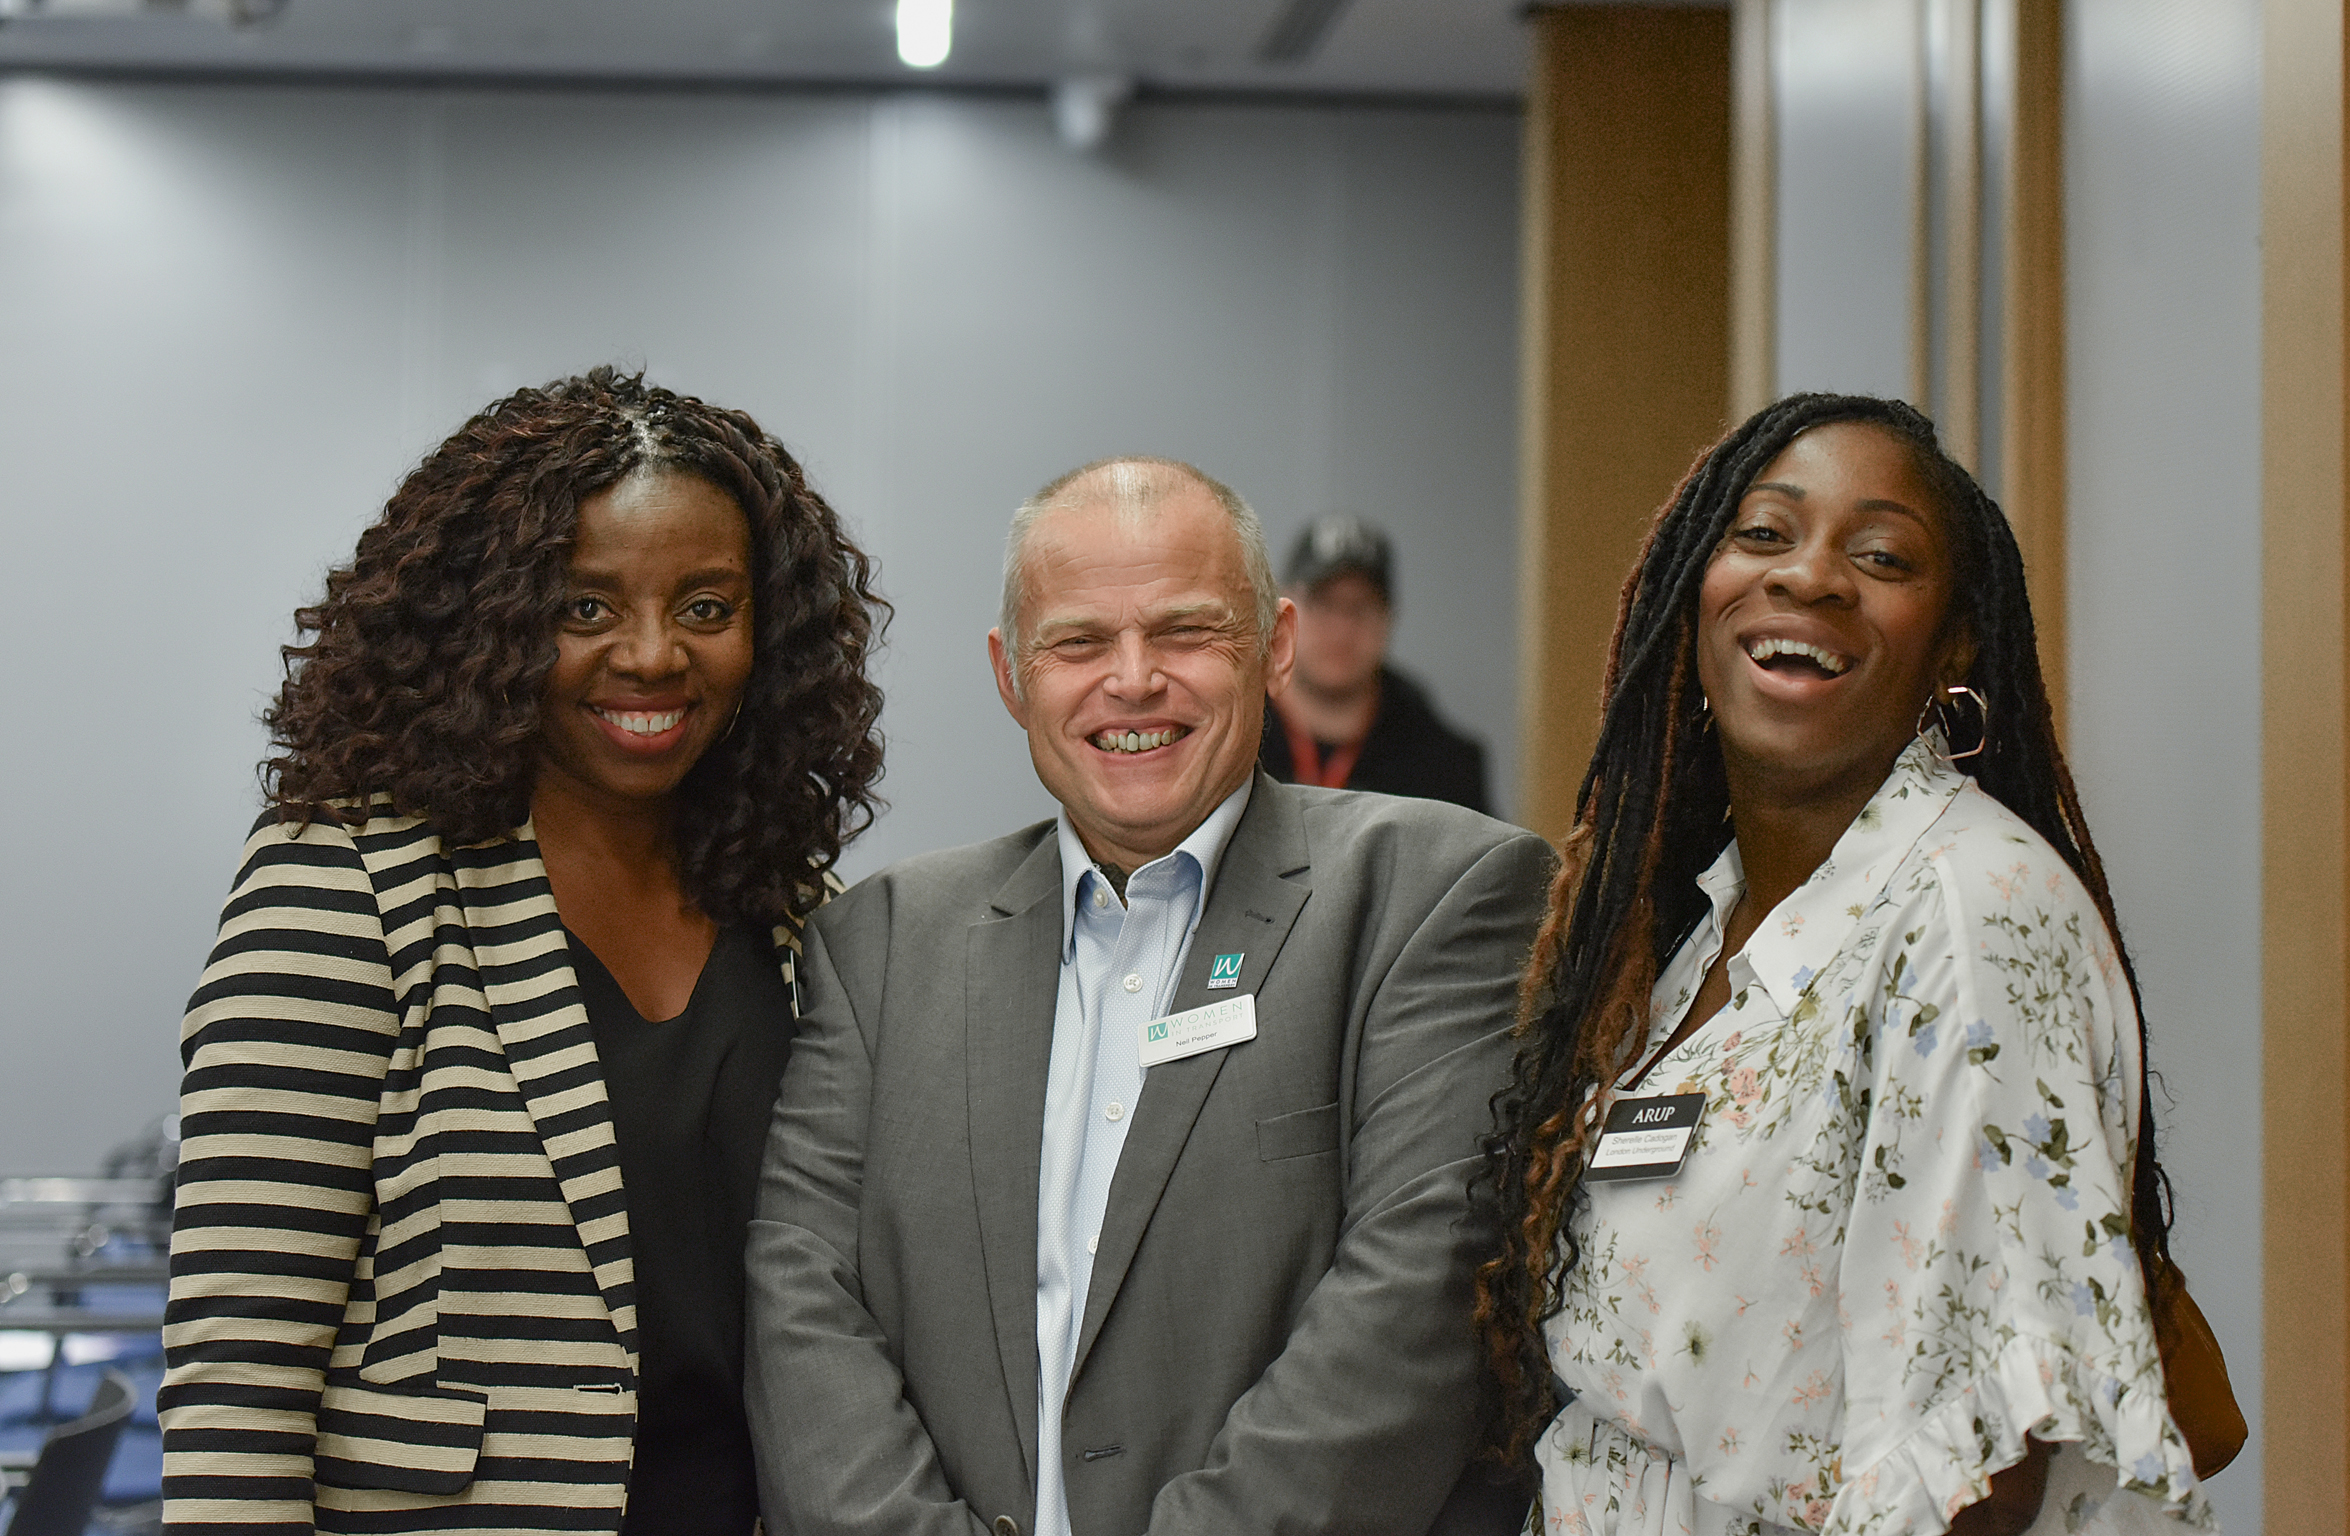 Neil Pepper (centre) at Women in Transport's Annual Mince Pies and Networking event